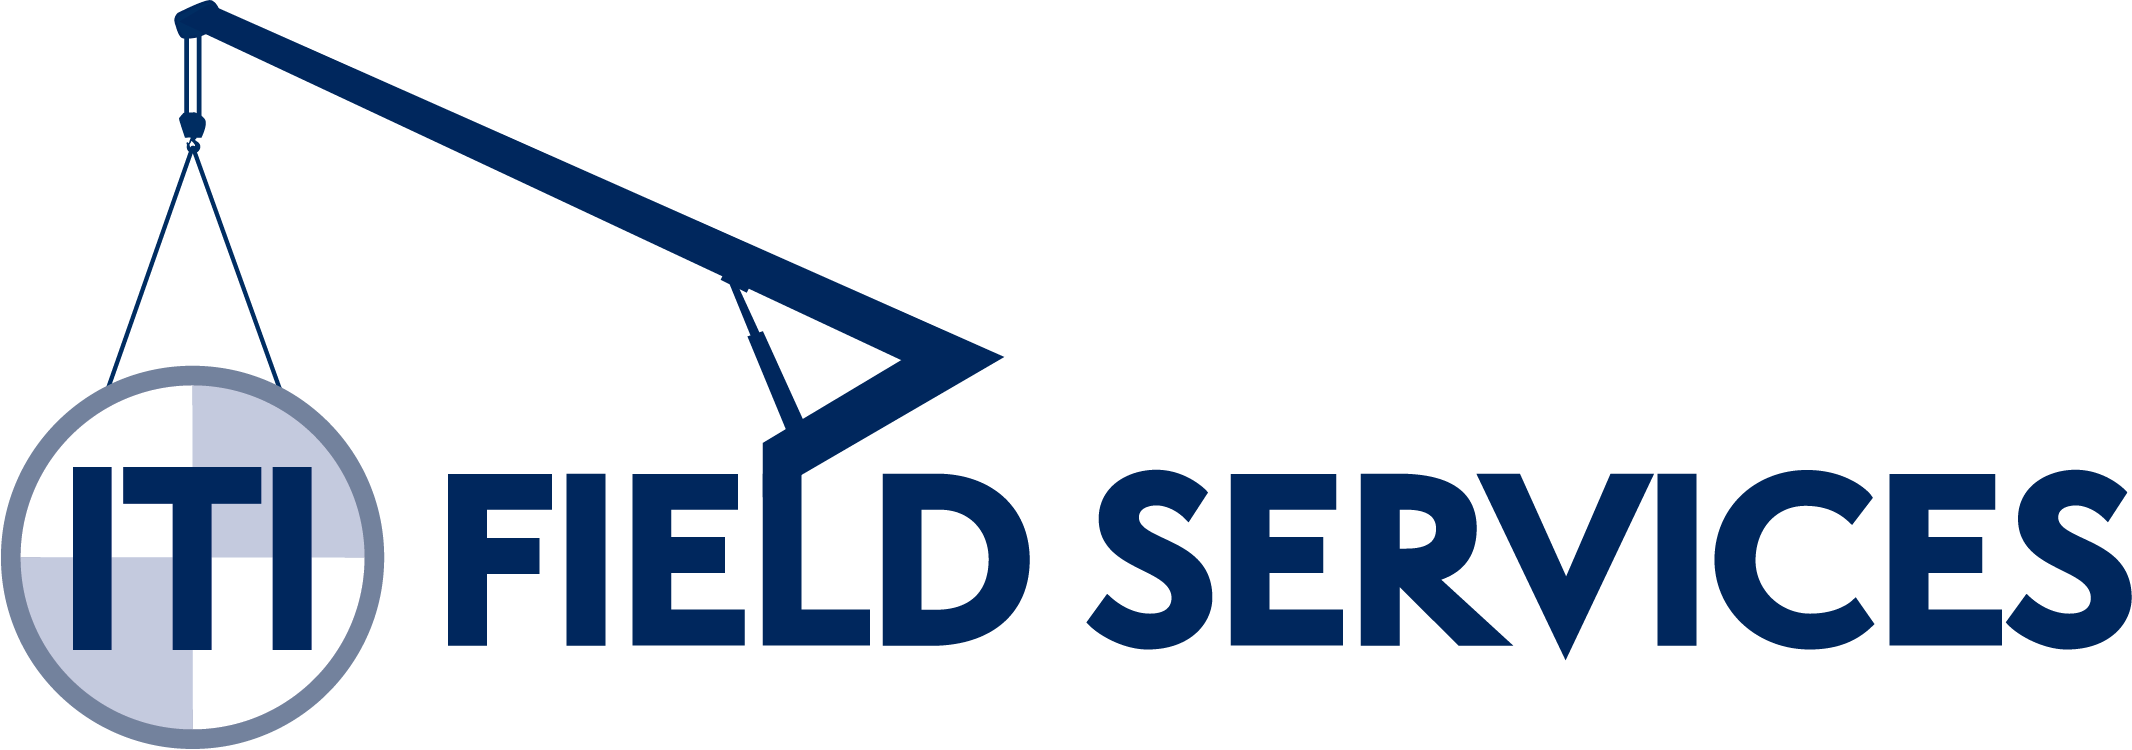 Field Services